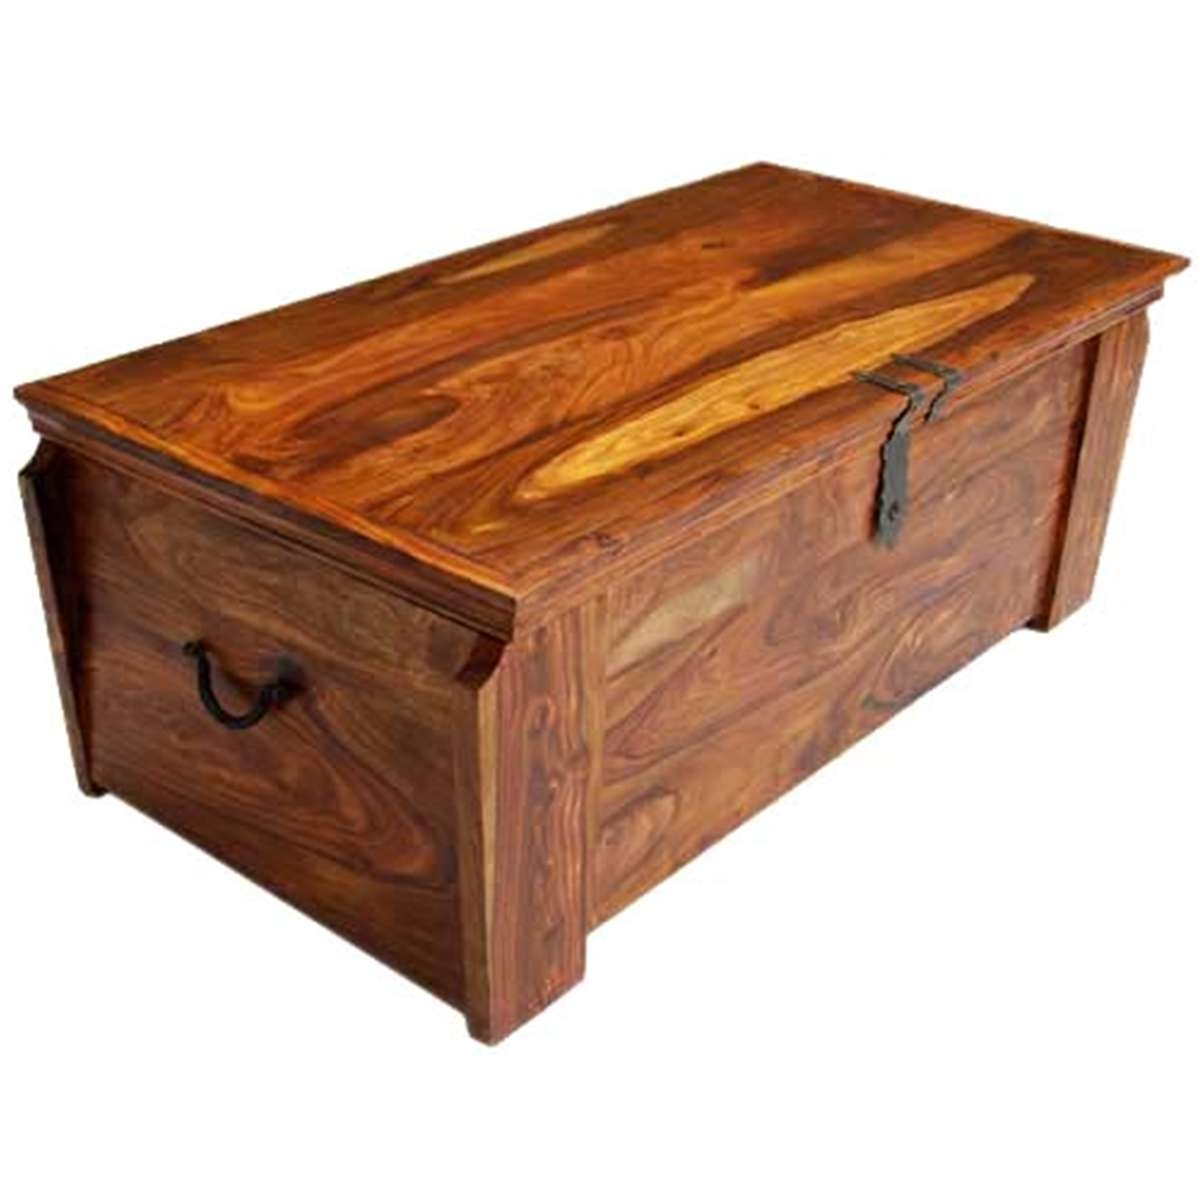 Newest Coffee Tables With Box Storage Intended For Wooden Storage Trunk Chest Box Coffee Table (Gallery 10 of 20)